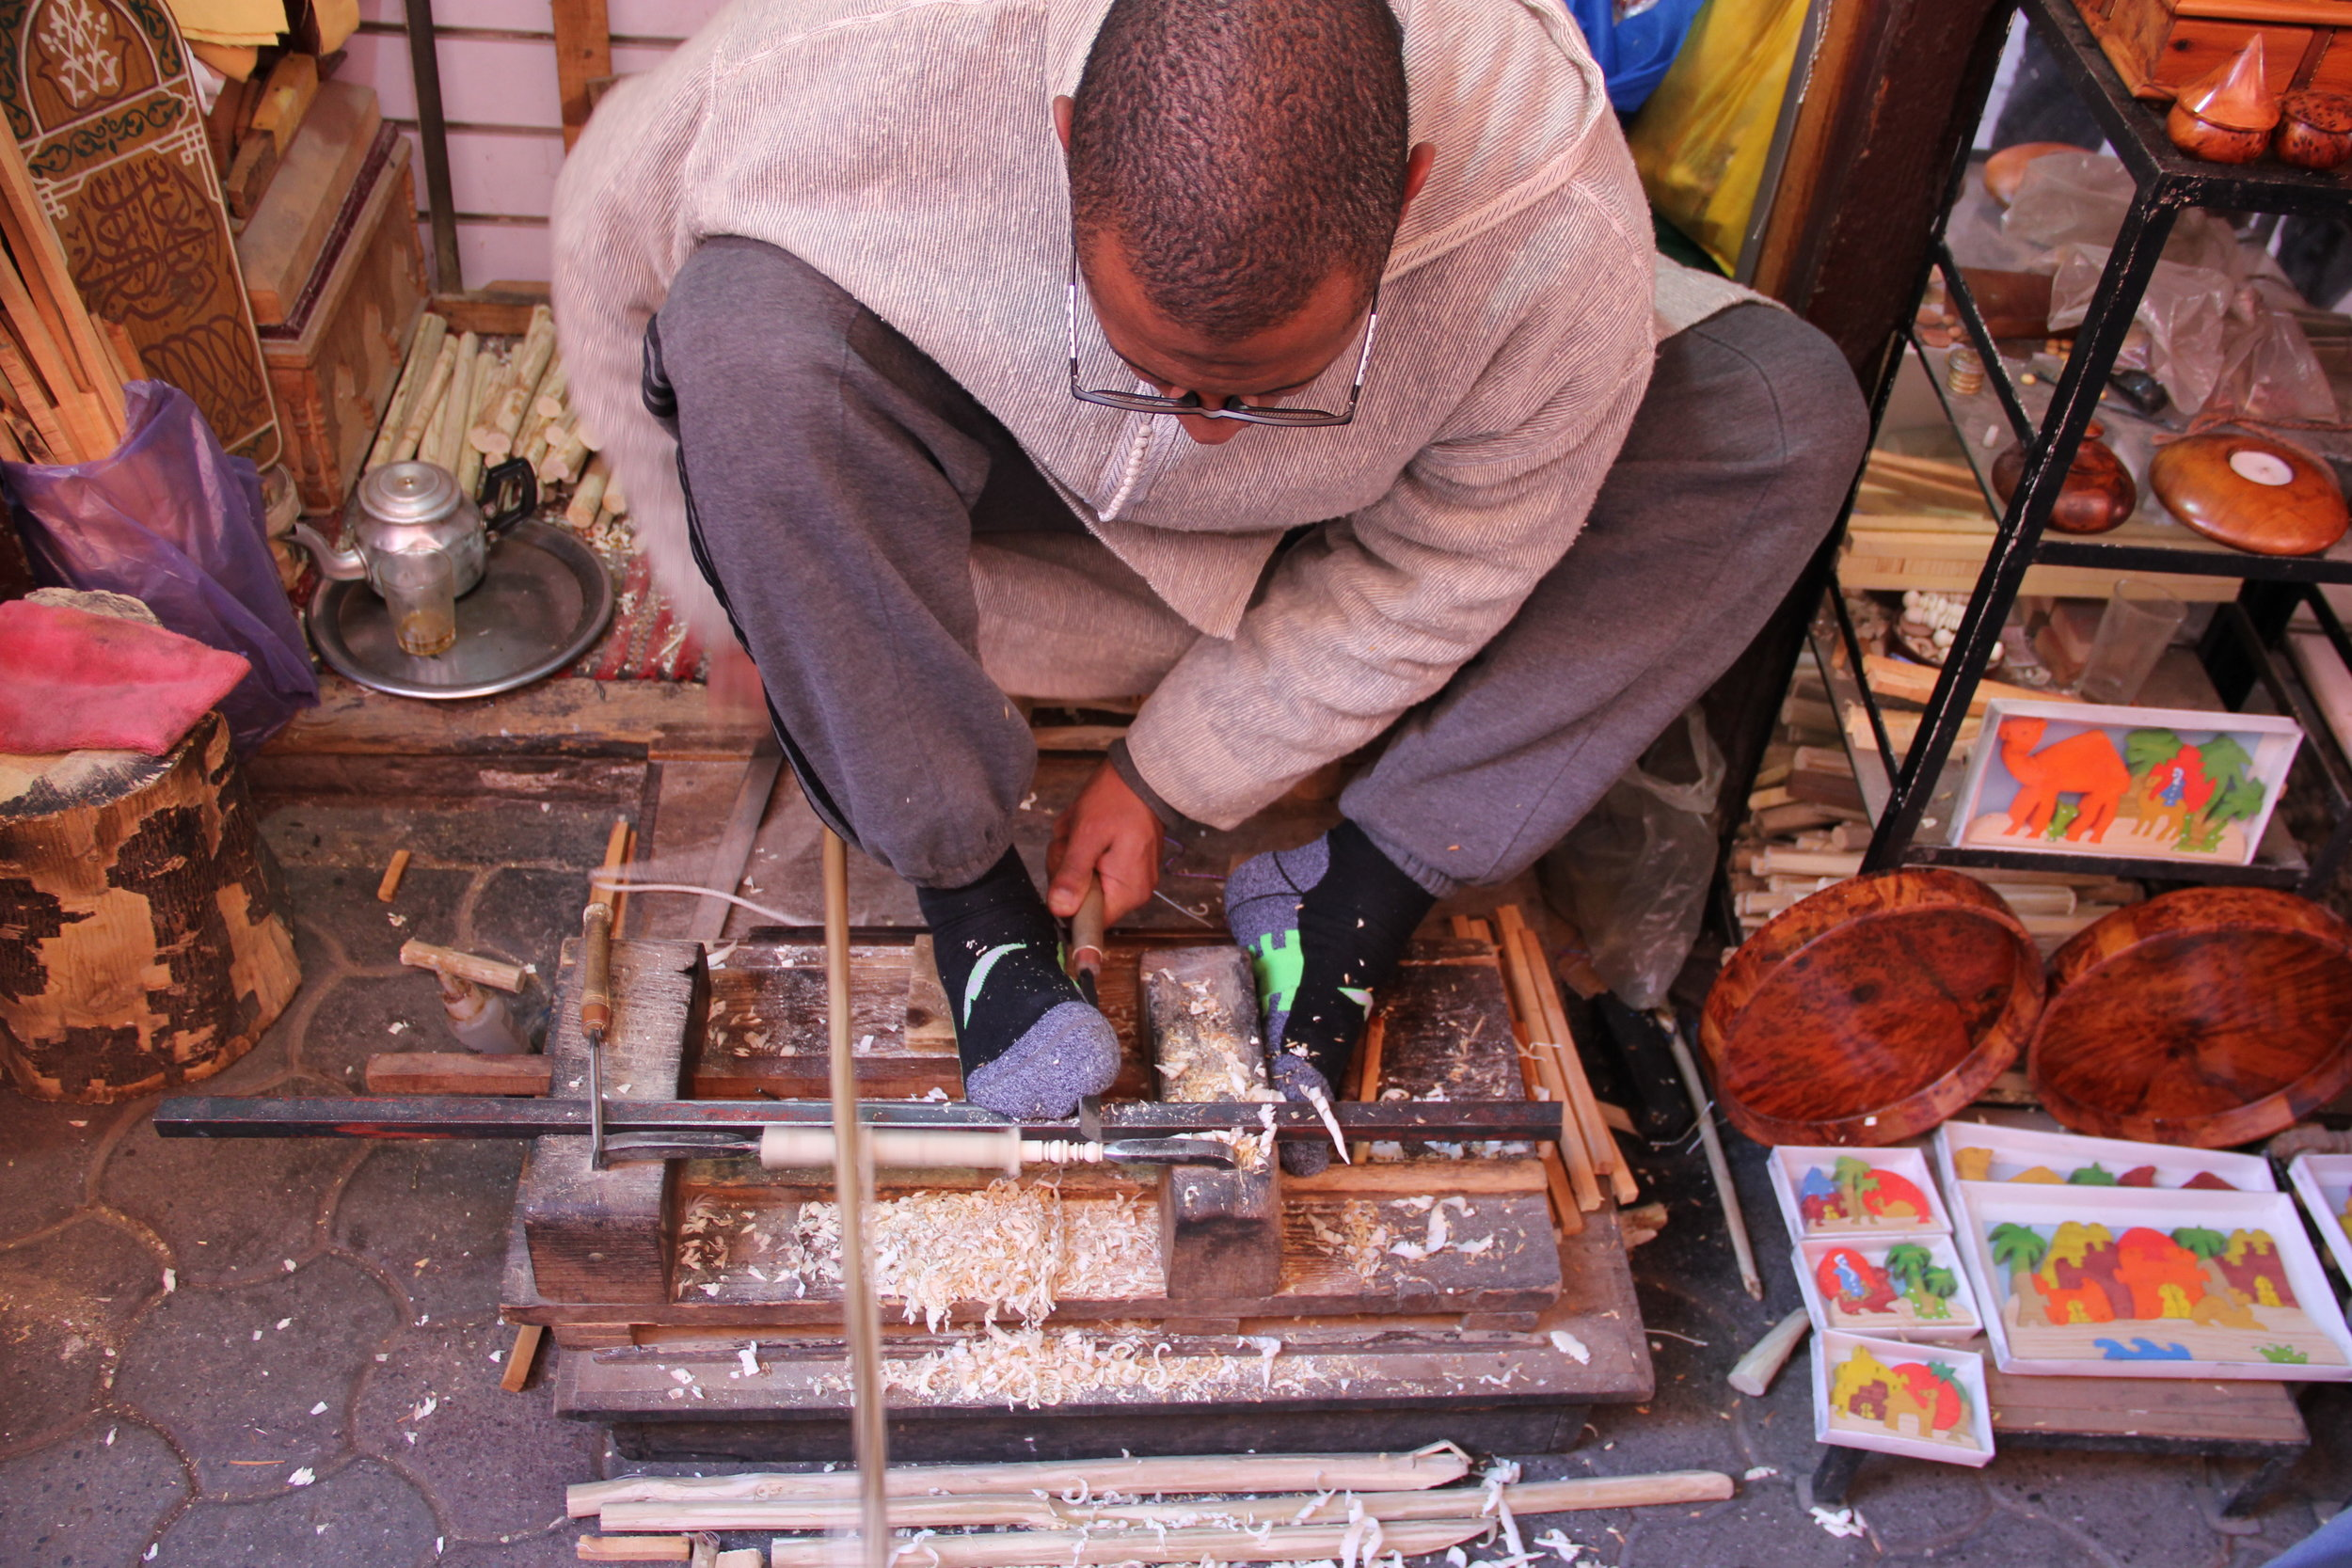 18.31.12_Morocco_wood worker.JPG